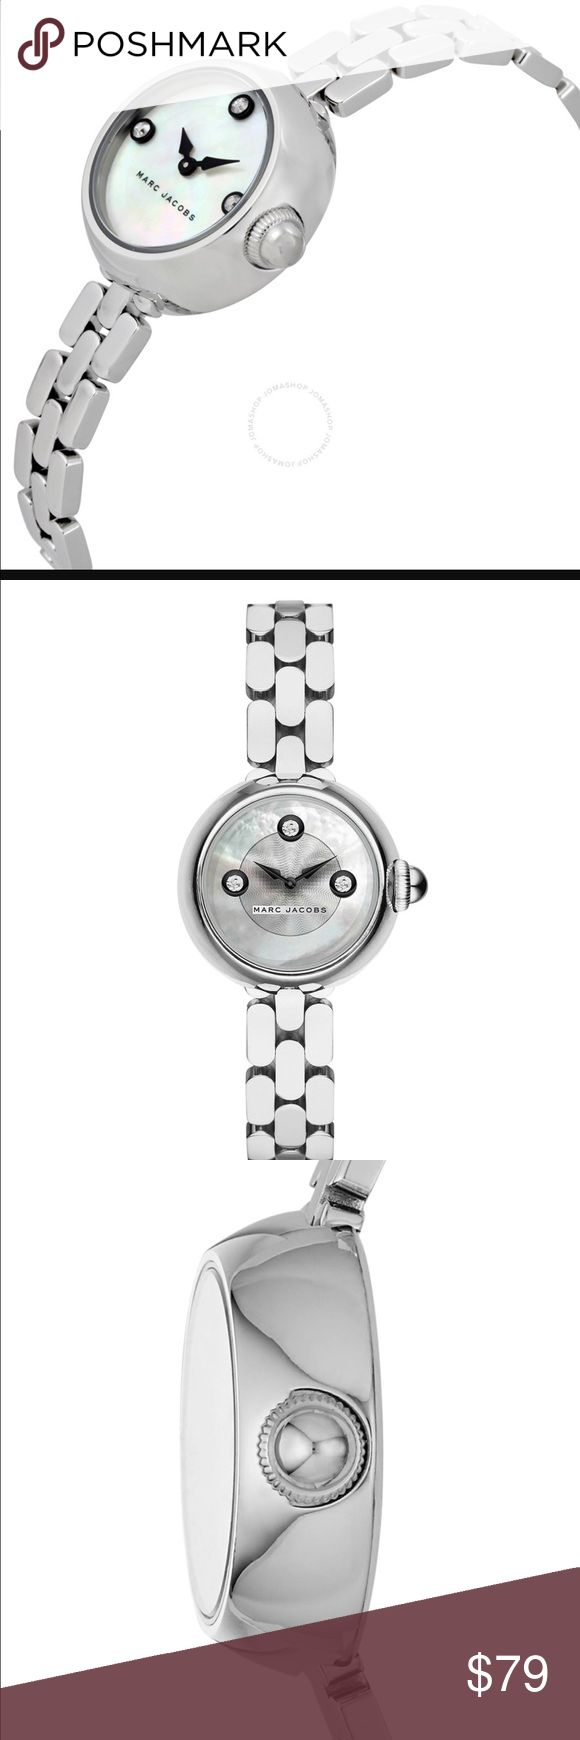 awesome Montre pour femme : MARC BY MARC JACOBS COURTNEY SILVER WOMEN'S  WATCH NWT Case size: 28mm Butte... Check more at http://trends.flashmode.tn/mode/montre-femme/montre-pour-femme-marc-by-marc-jacobs-courtney-silver-womens-watch-nwt-case-size-28mm-butte/